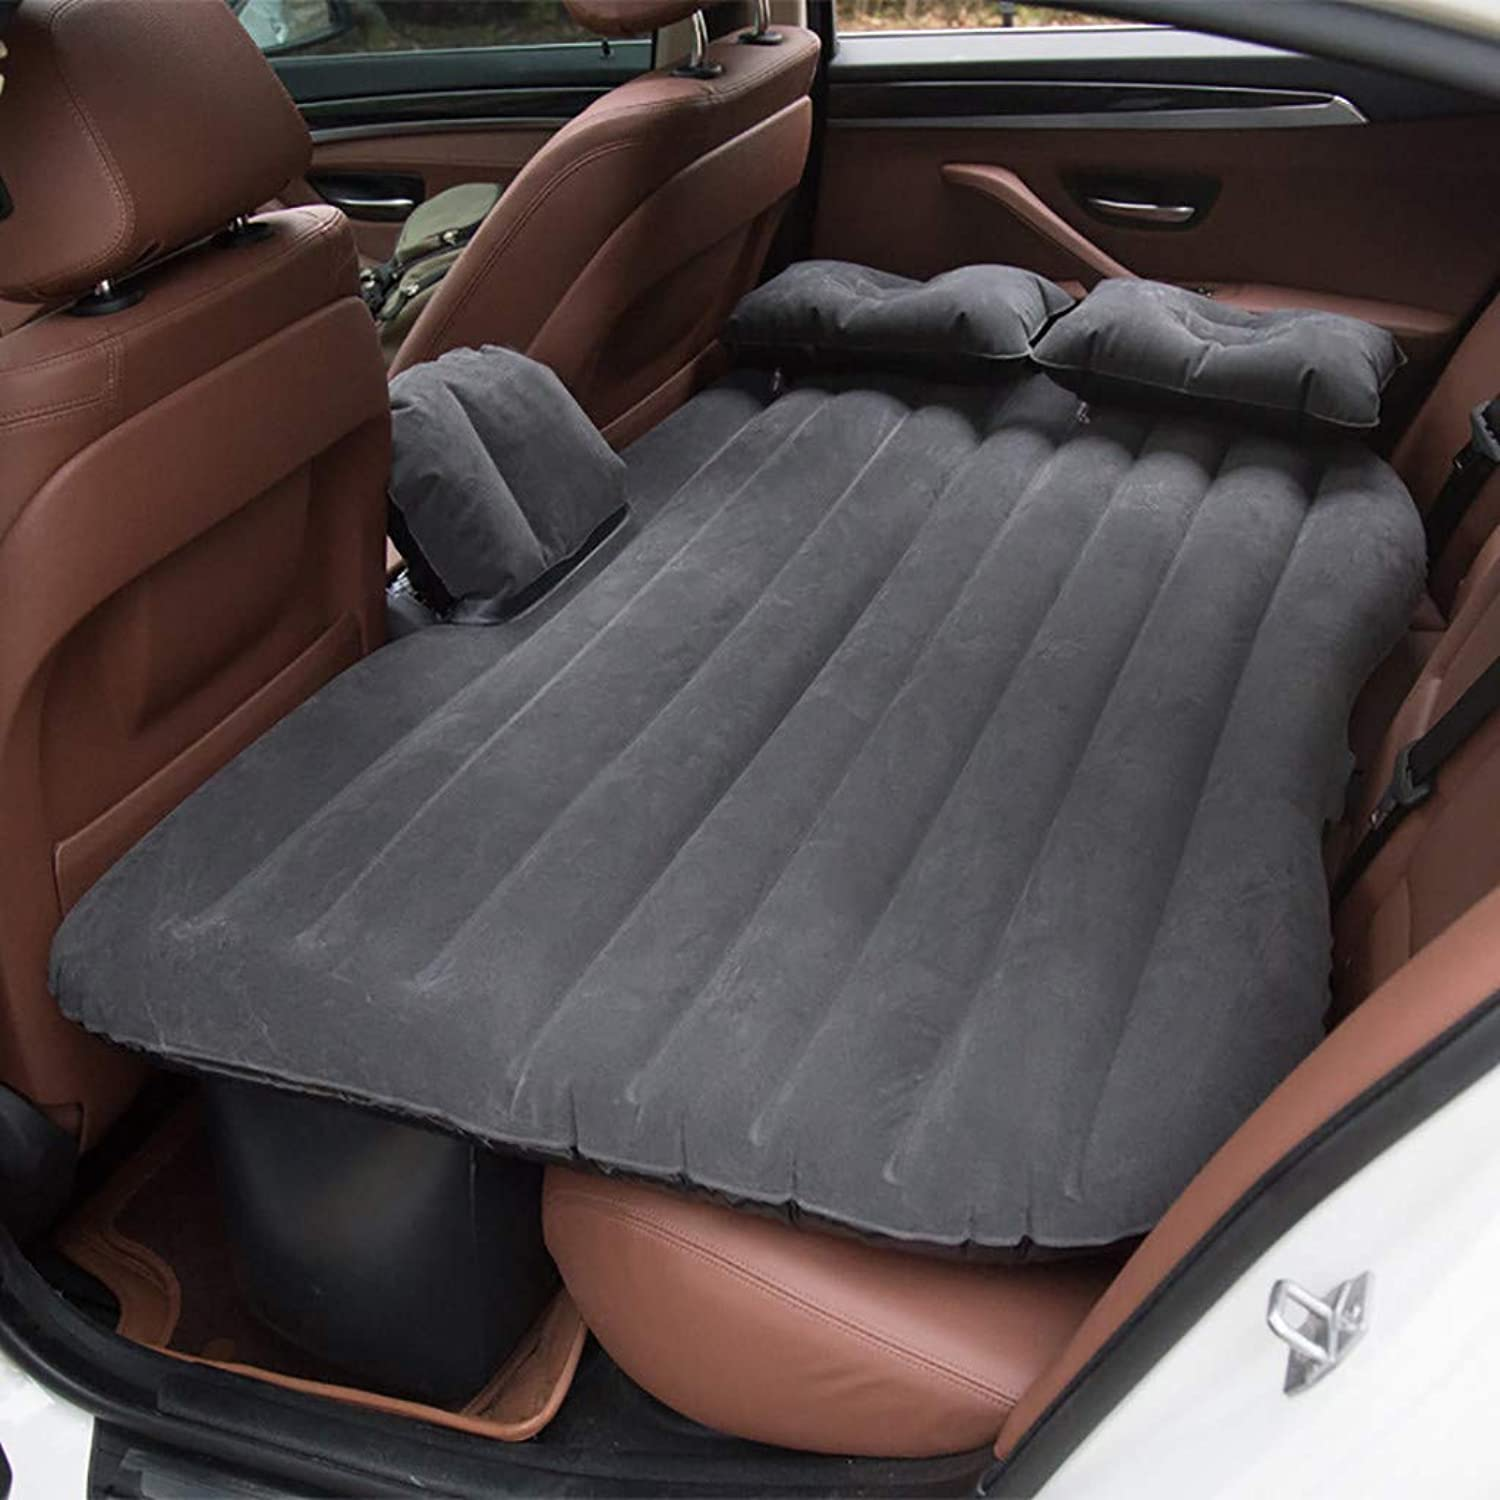 Car Travel Inflatable Mattress Air Bed Cushion Camping Universal SUV Extended Air Couch with Two Air Pillows Inflatable Car Air Mattress Camping Inflation Bed Travel Air Bed Car Back Seat (Black)